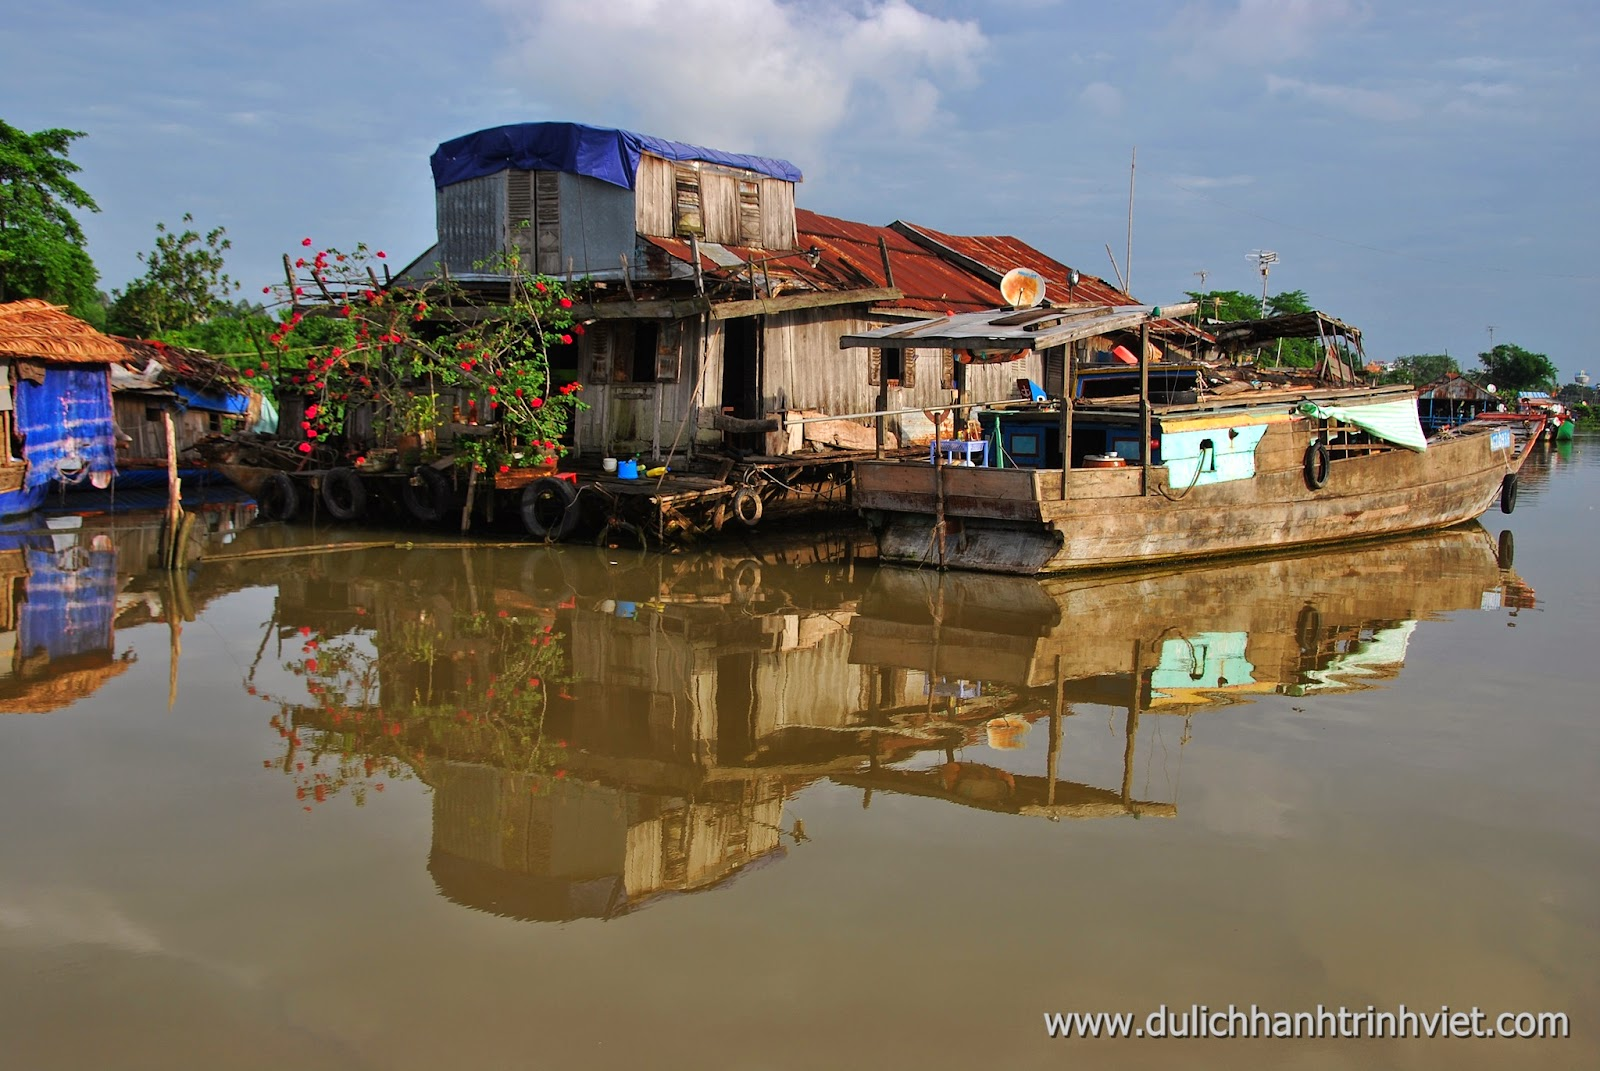 Village flottant de Long Xuyen